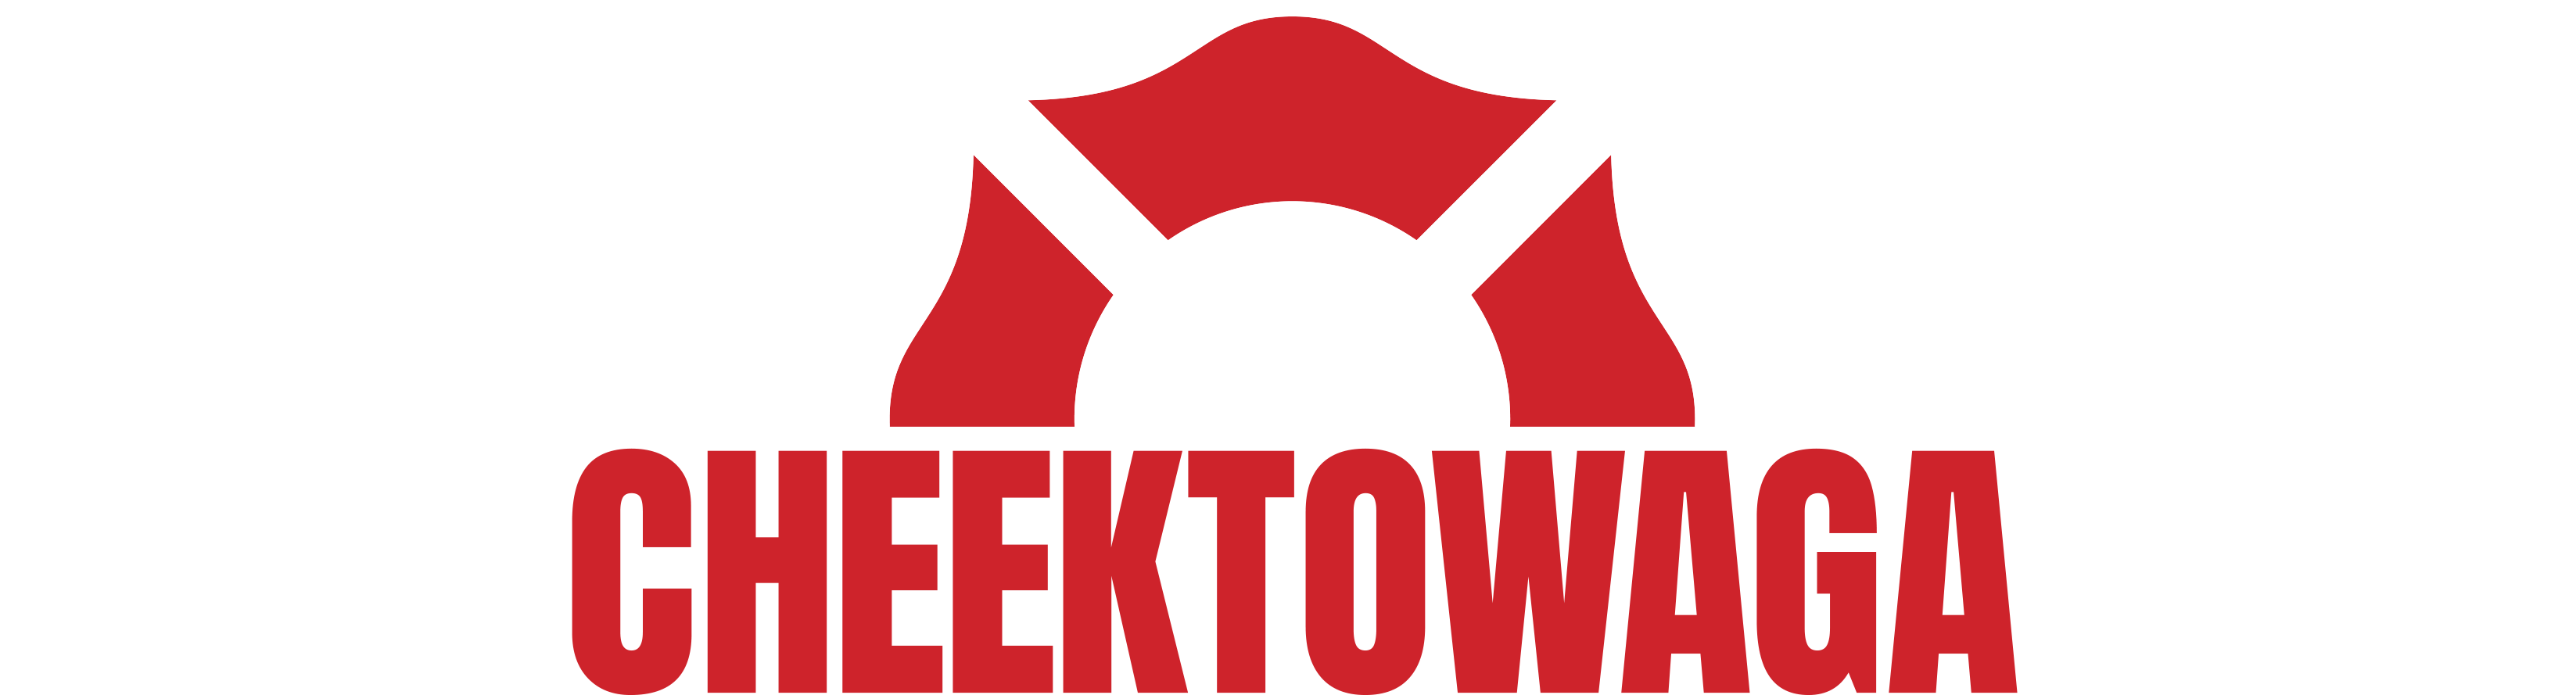 Join Cheektowaga Fire